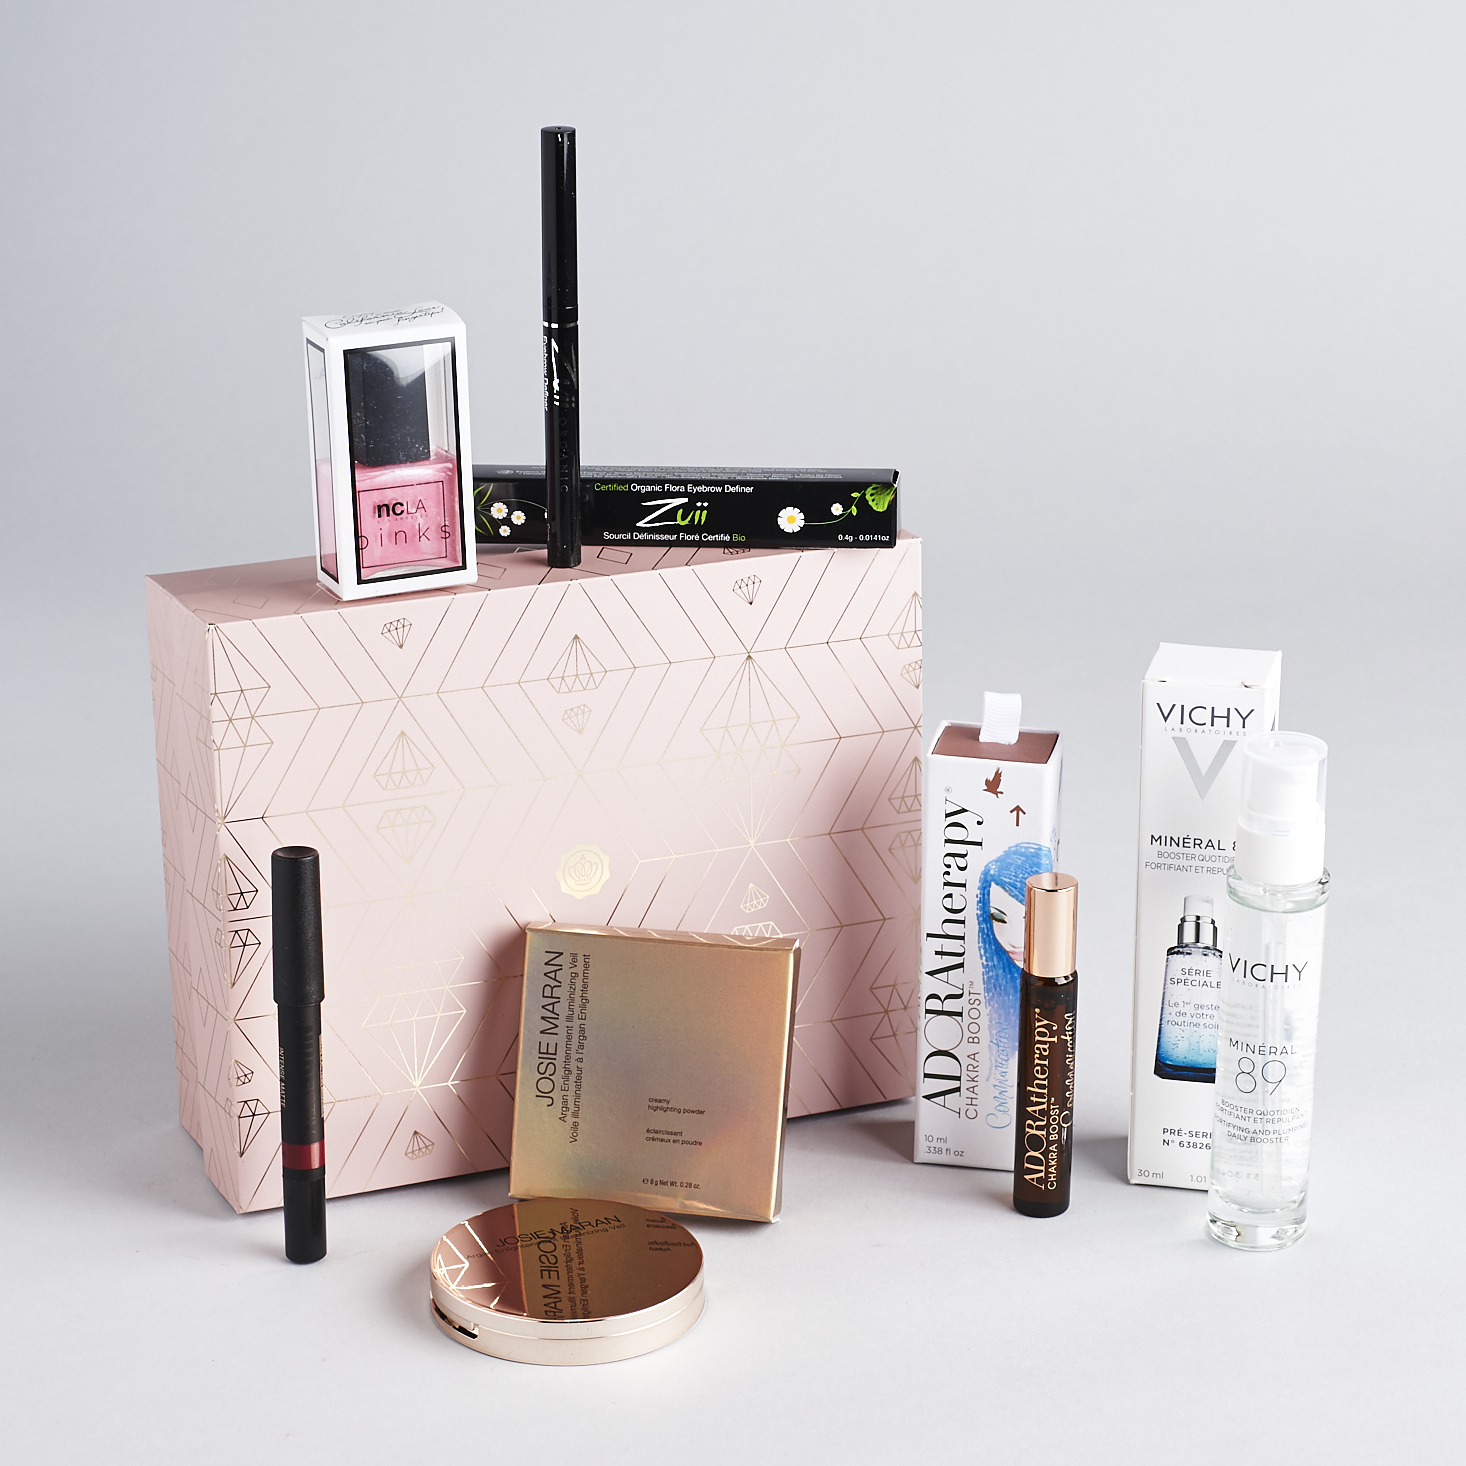 Glossybox-LE-Mothers-Day-April-2017-0004.jpg